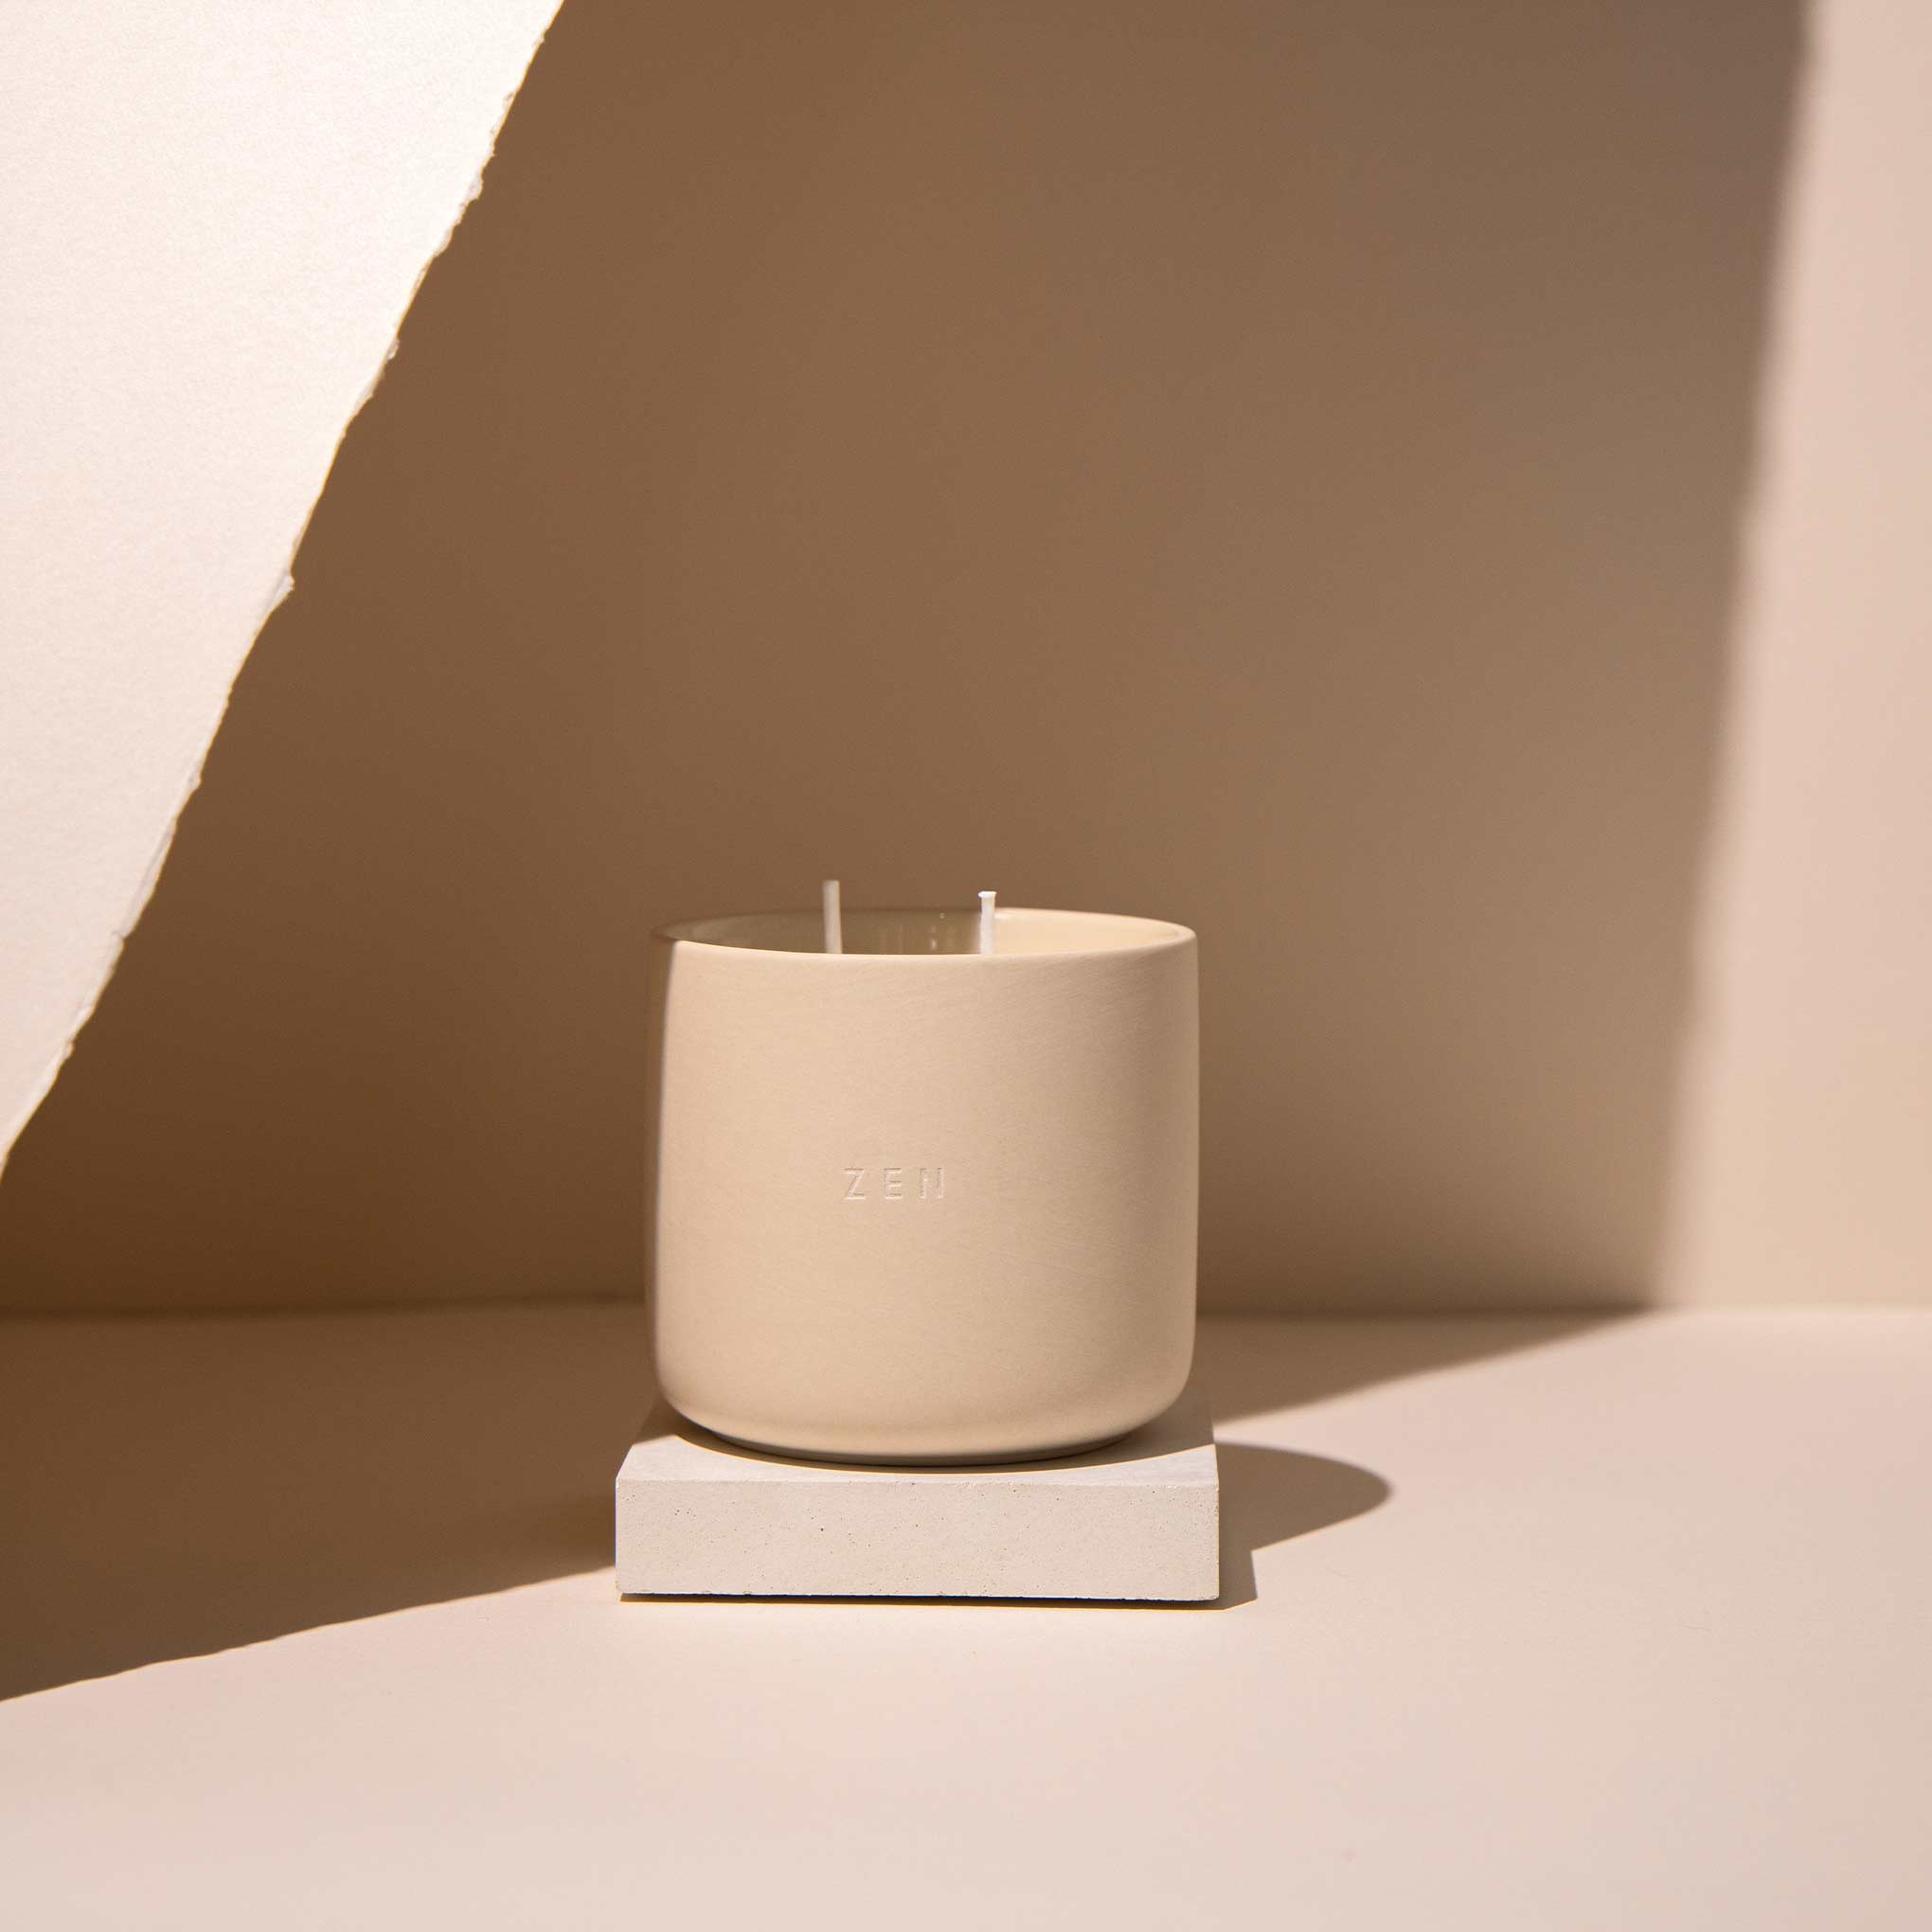 Ceramic candle jar on cream coloured background with artistic shadows